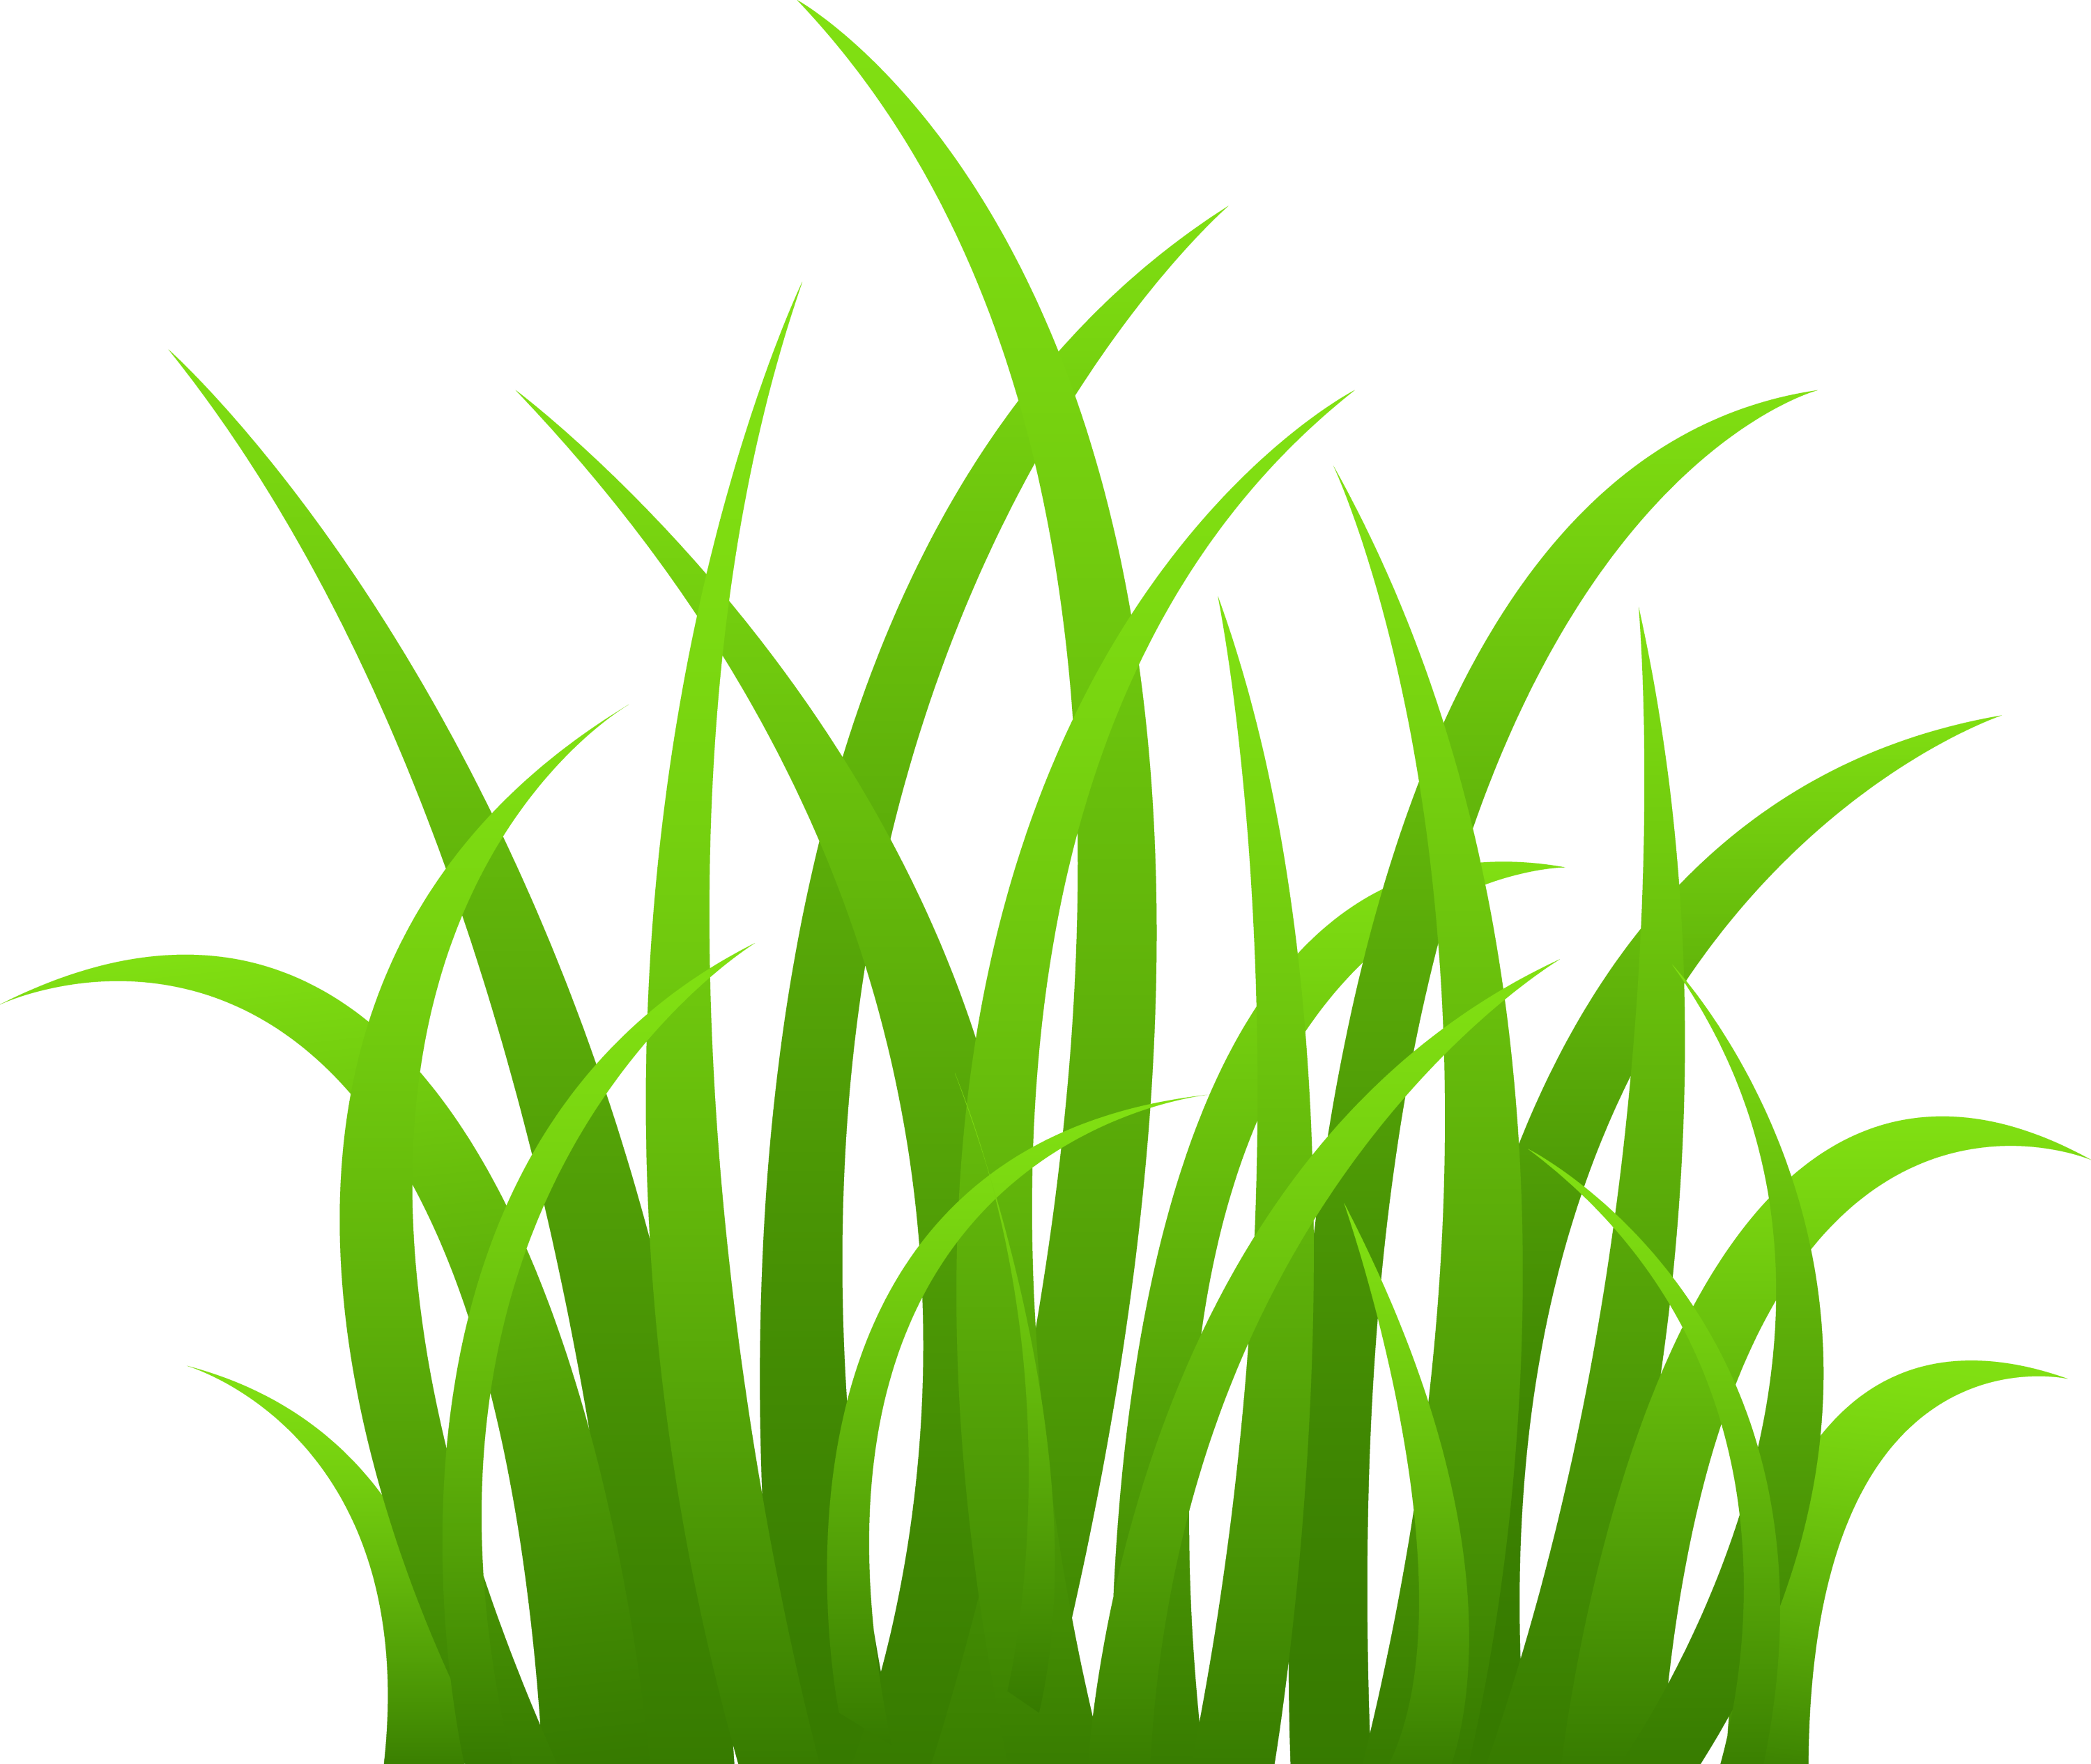 Strands of Green Grass - Free Clip Art